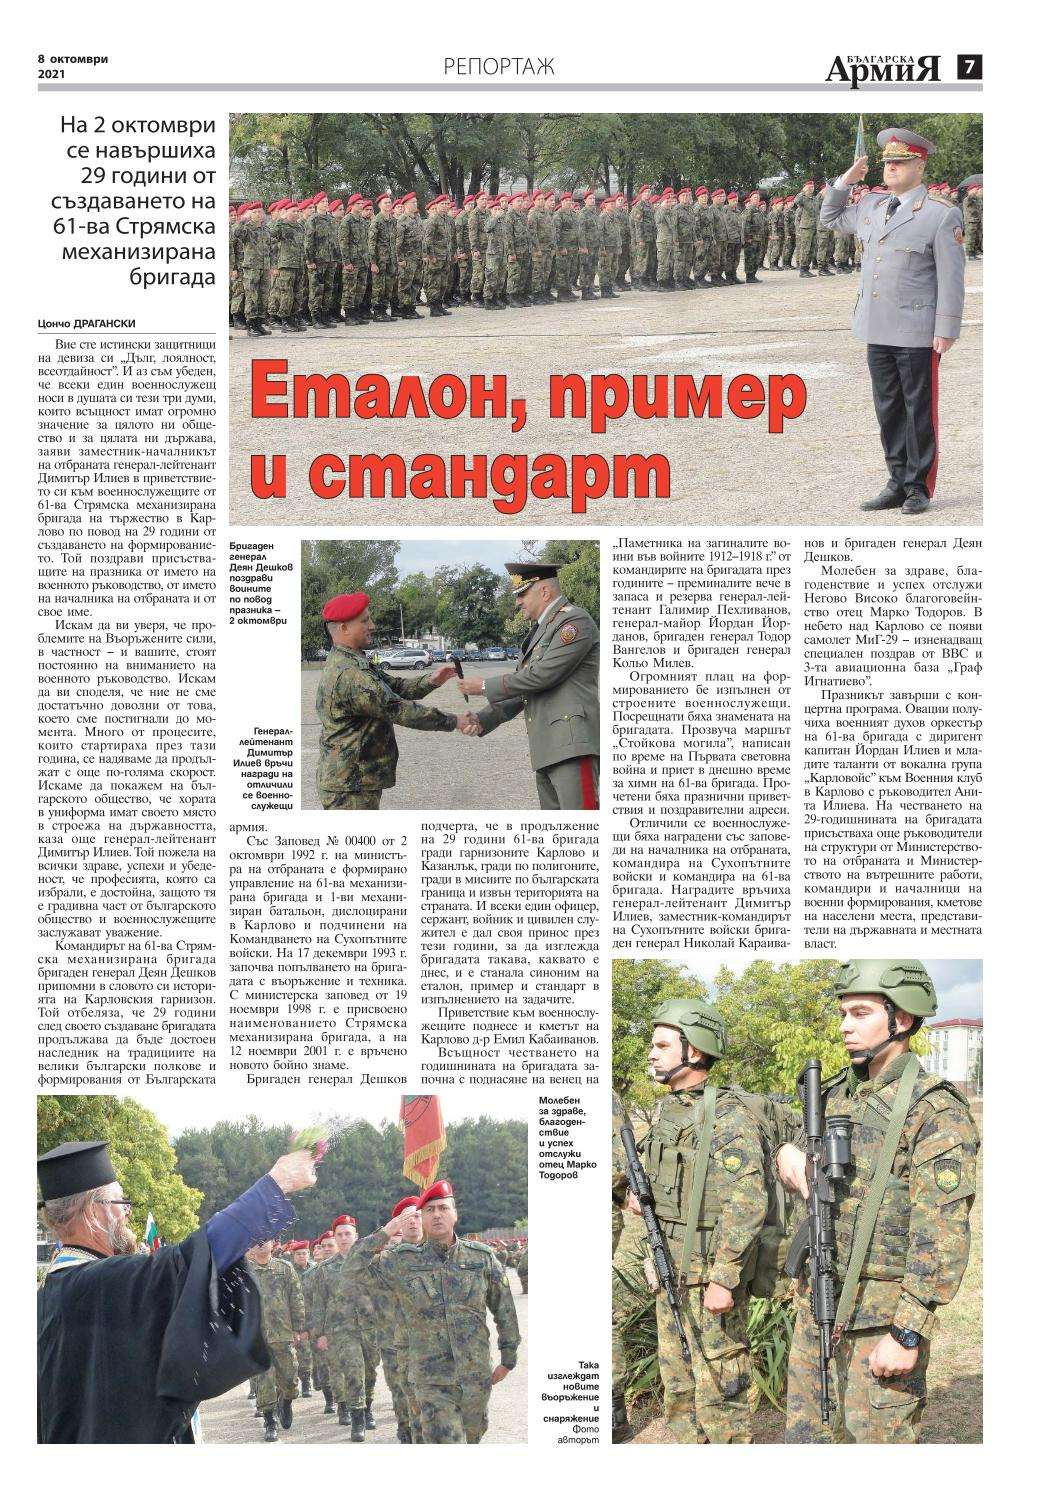 https://armymedia.bg/wp-content/uploads/2021/10/07.page1_-1.jpg